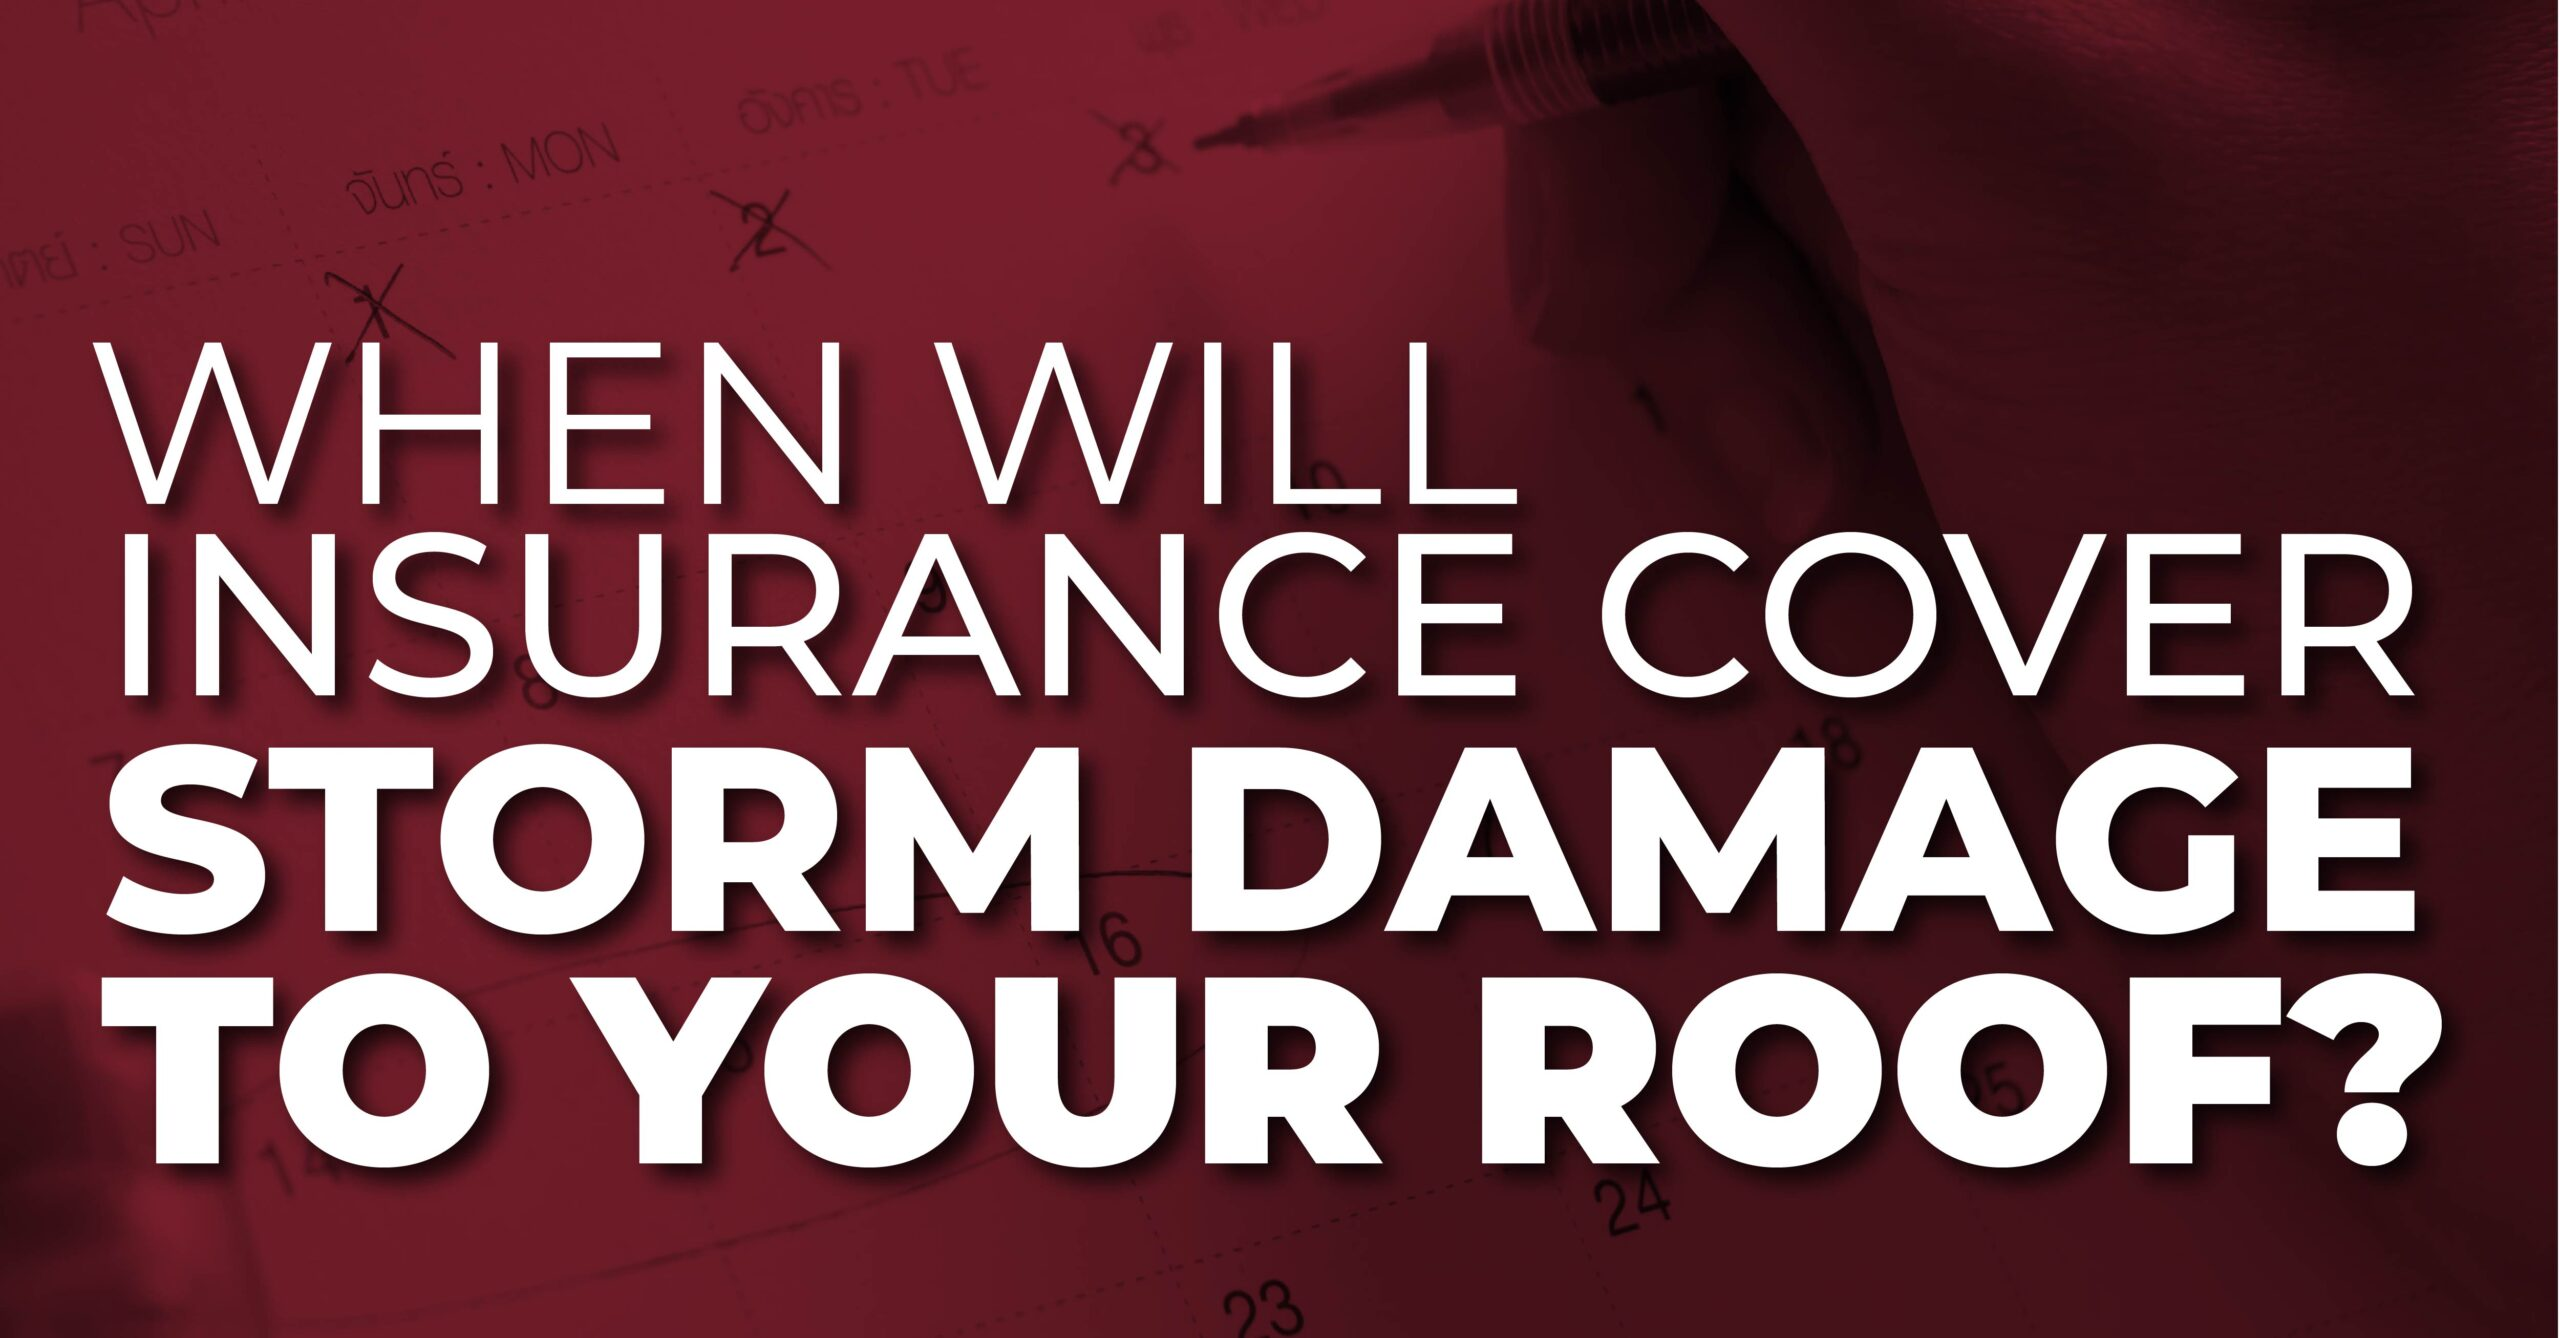 When Will Insurance Cover Storm Damage To Your Roof?